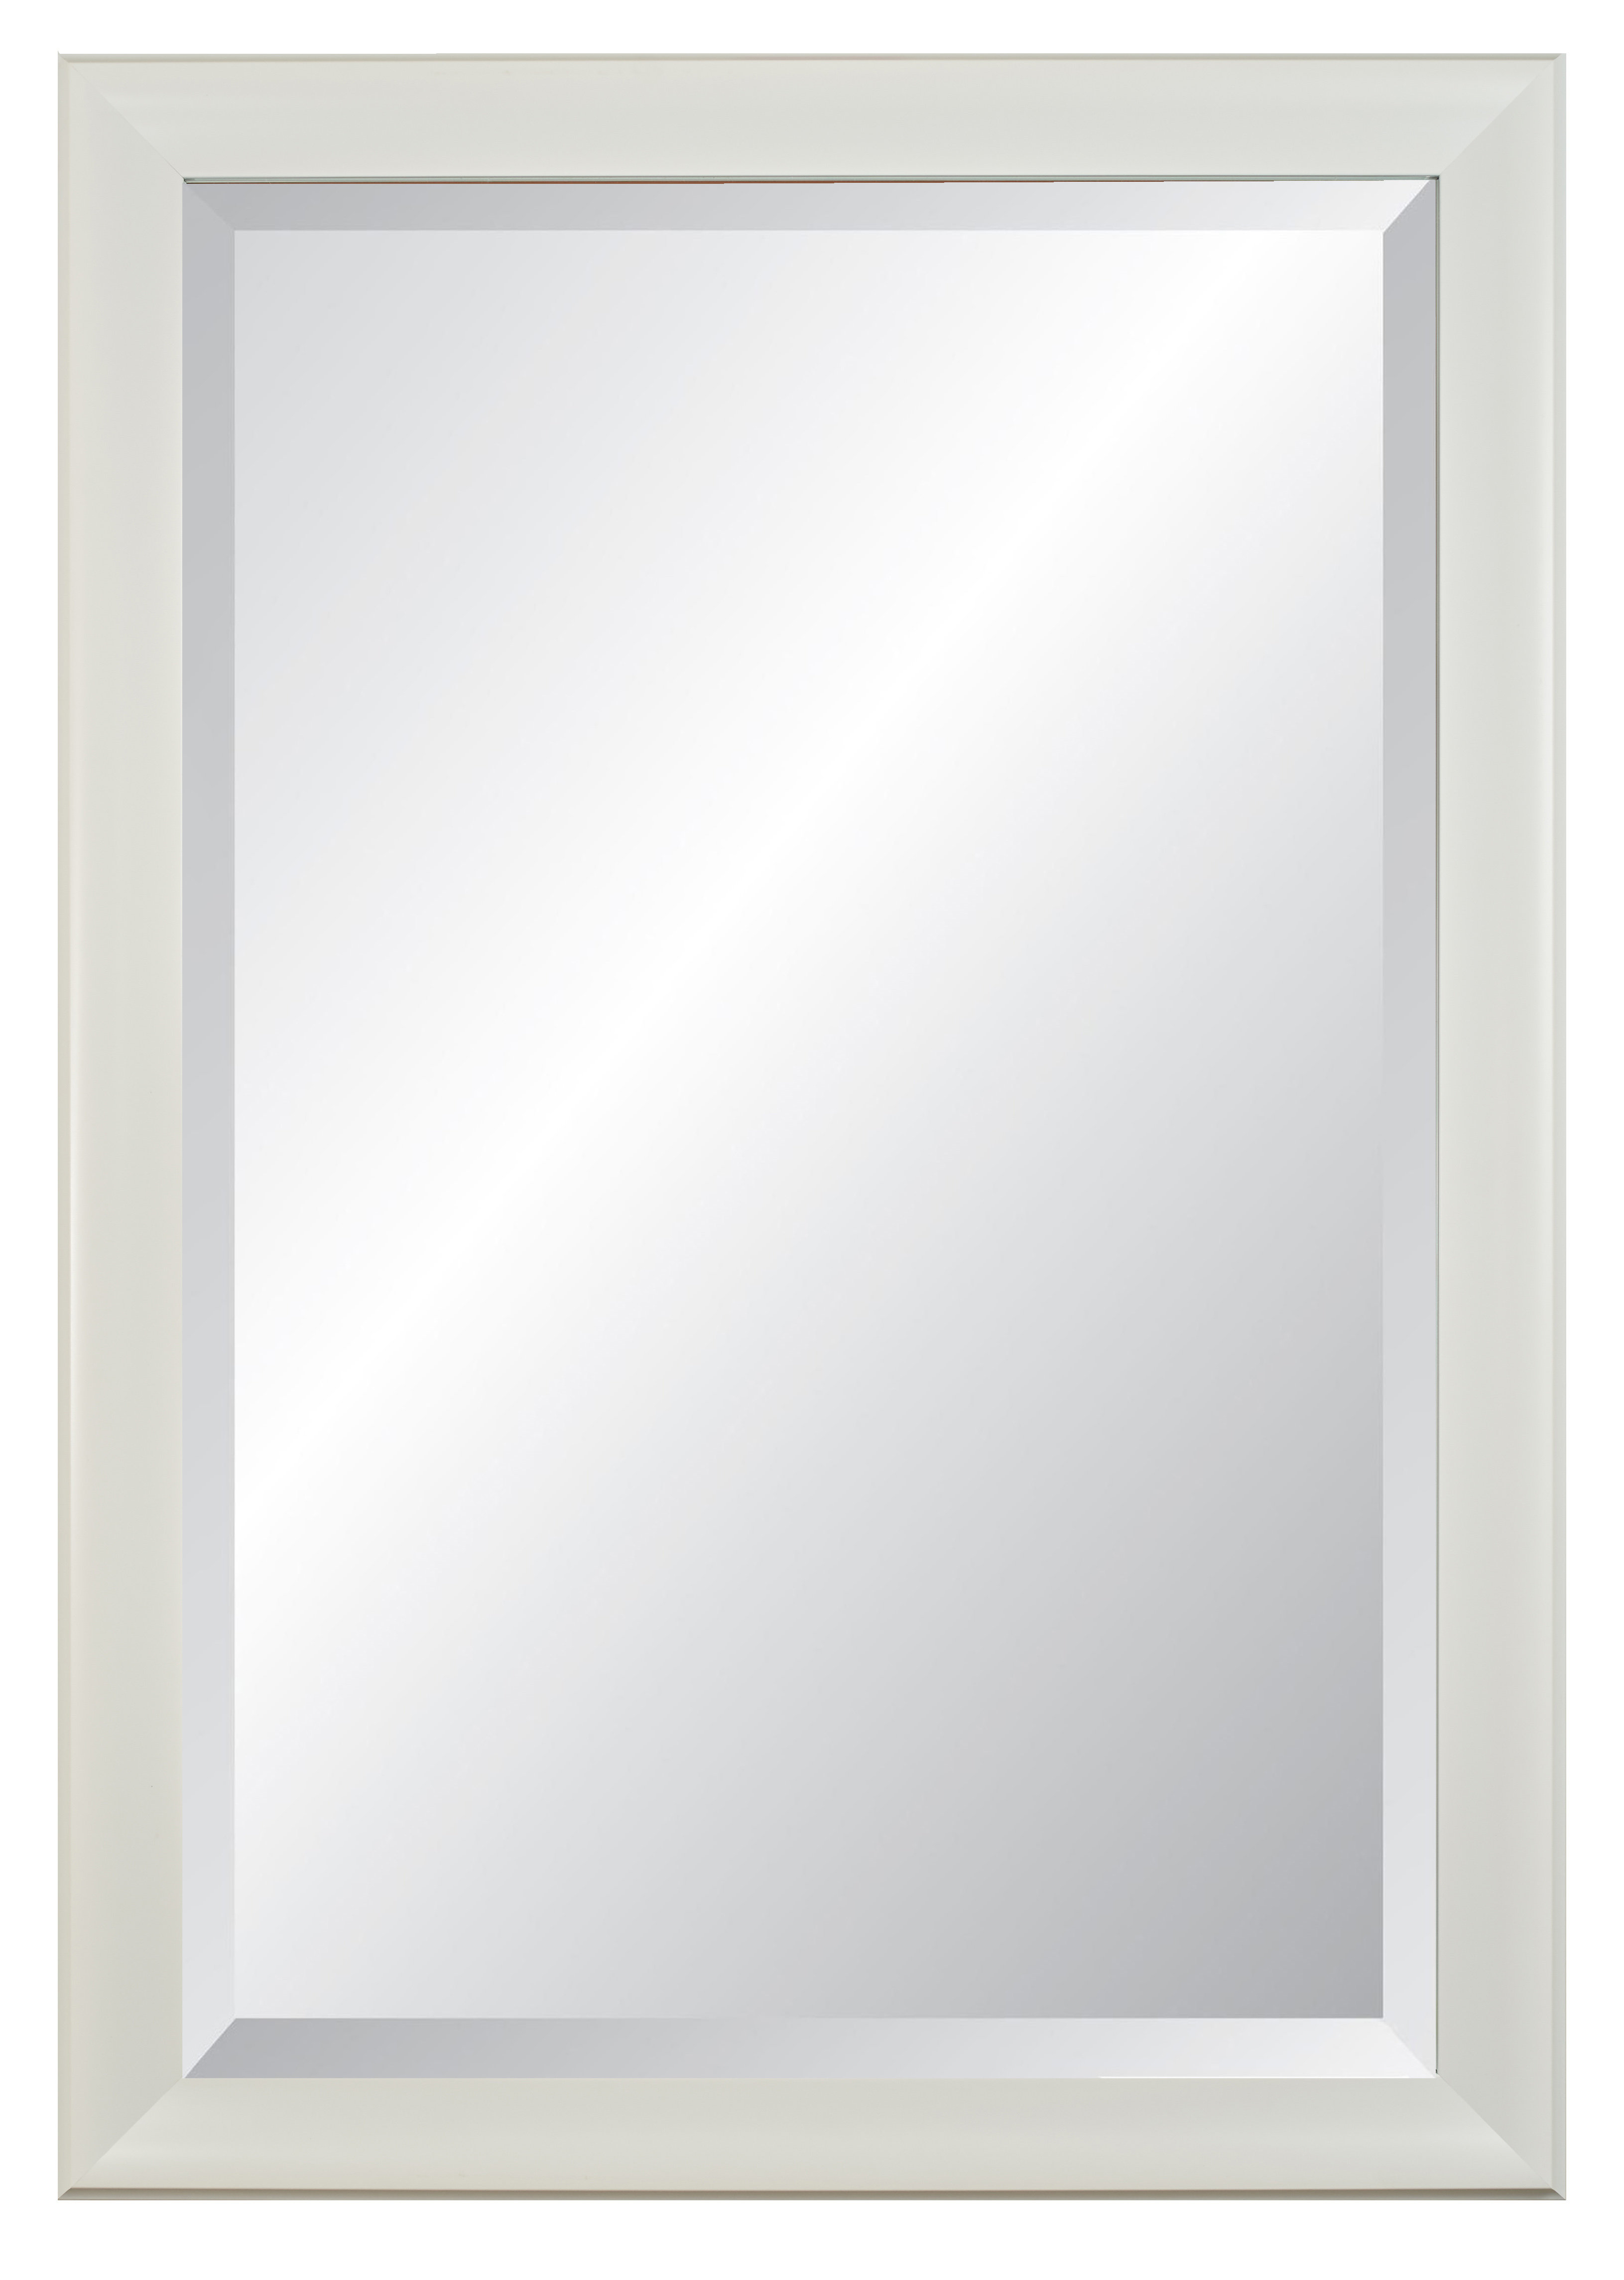 Mercury Glass Framed Mirror | Wayfair With Caja Rectangle Glass Frame Wall Mirrors (View 16 of 30)